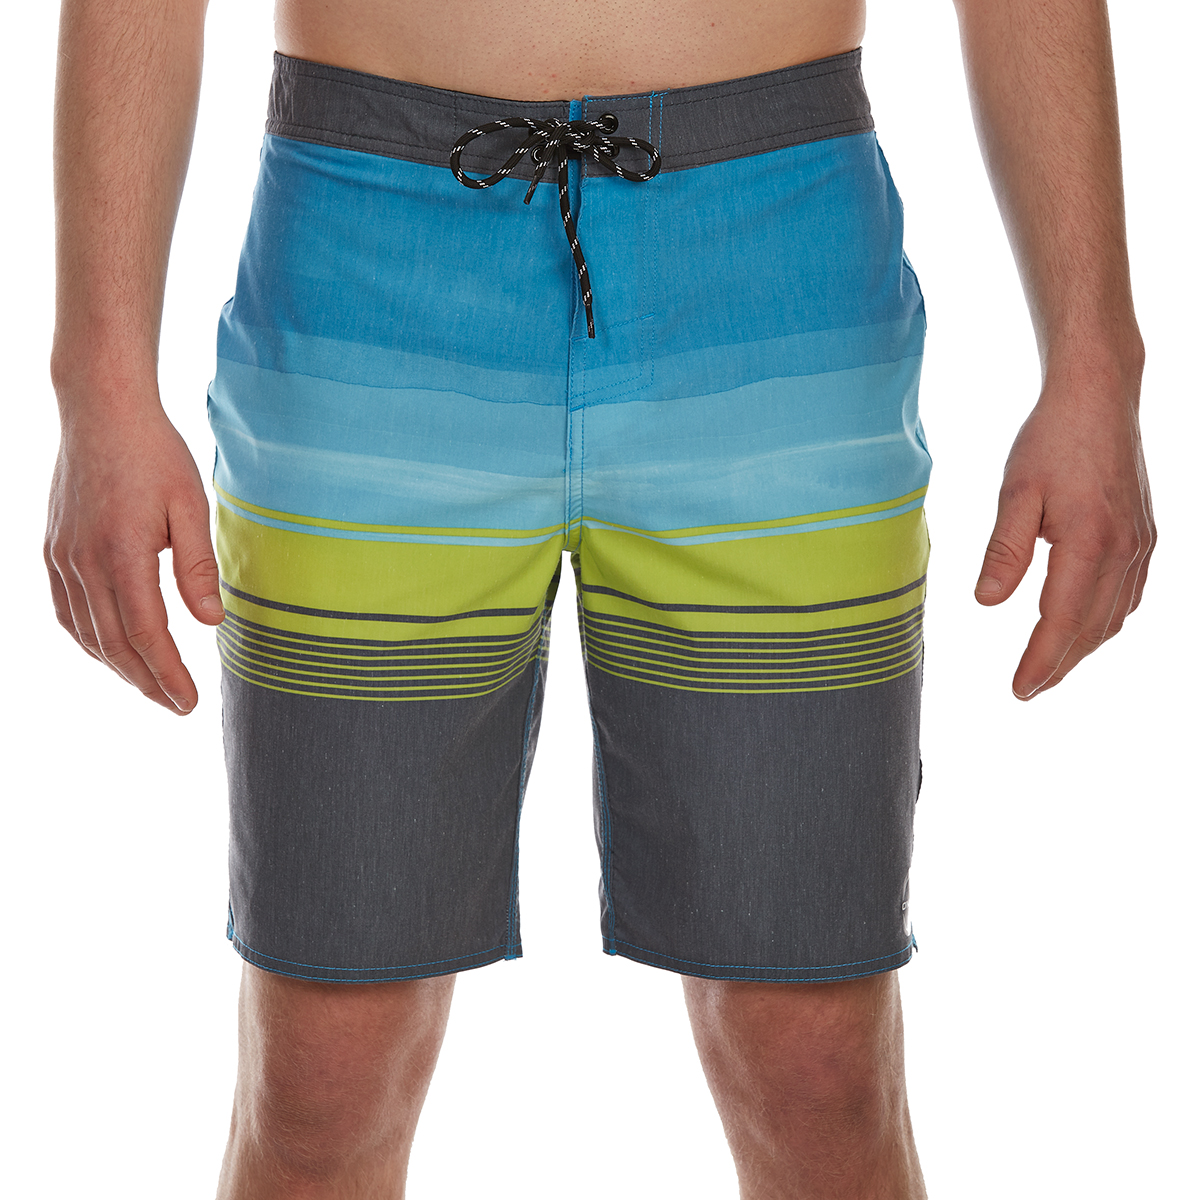 O'neill Guys' Informant Boardshorts - Green, 30